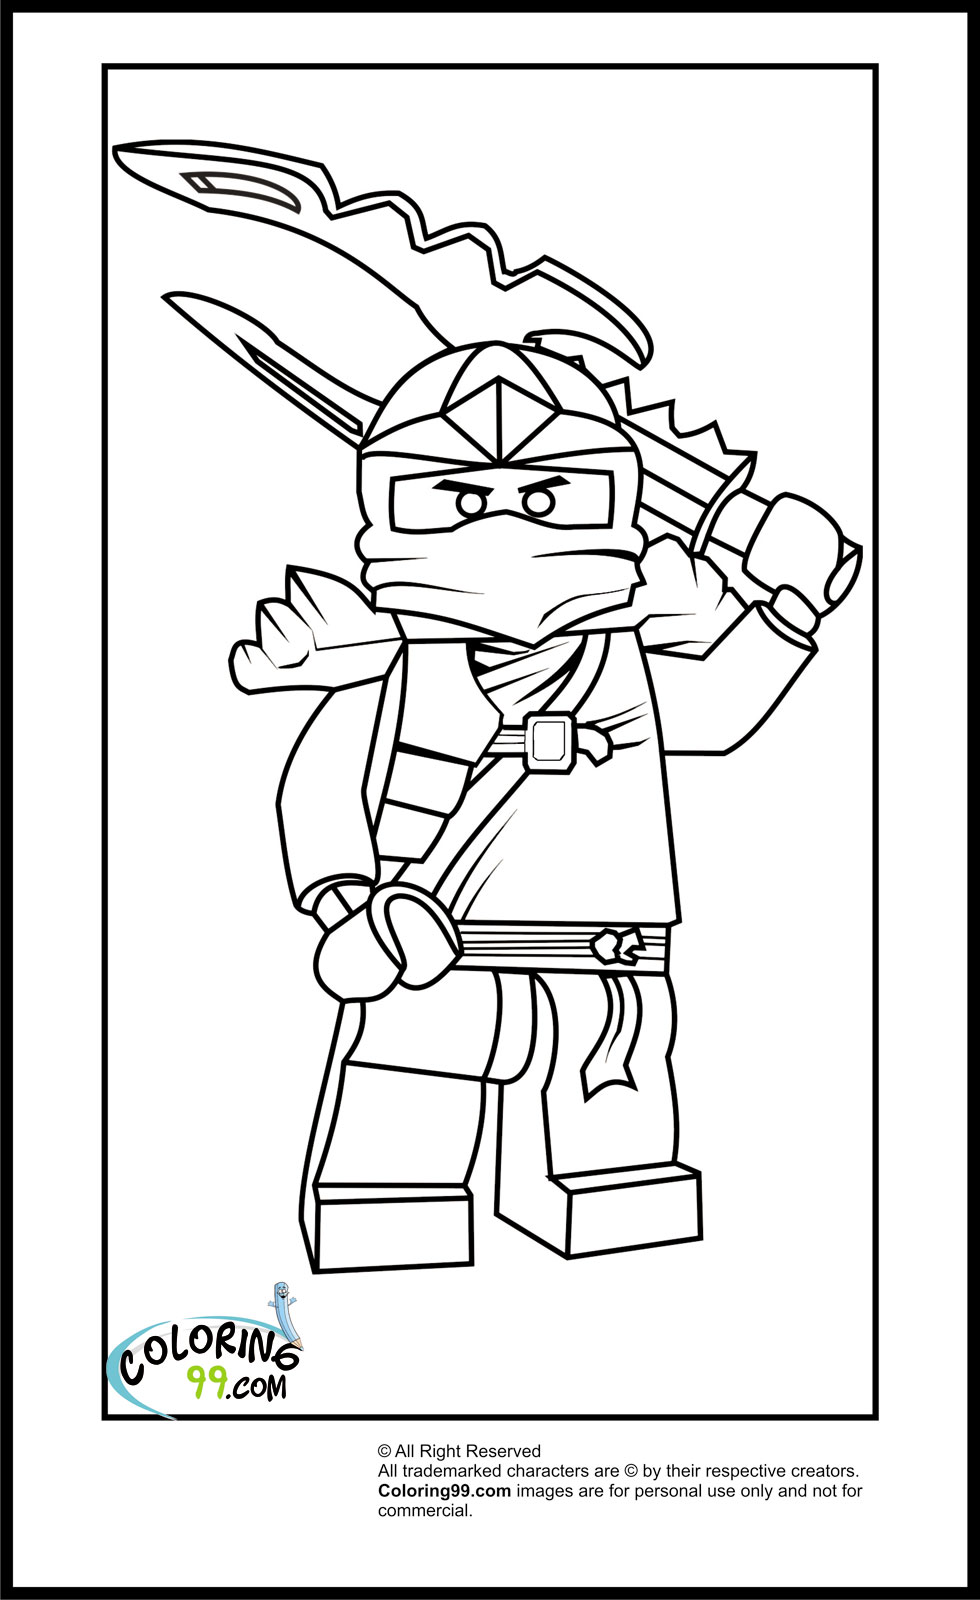 Lego Ninjago Coloring Pages Free Printable Pictures Lego Free Coloring Pages